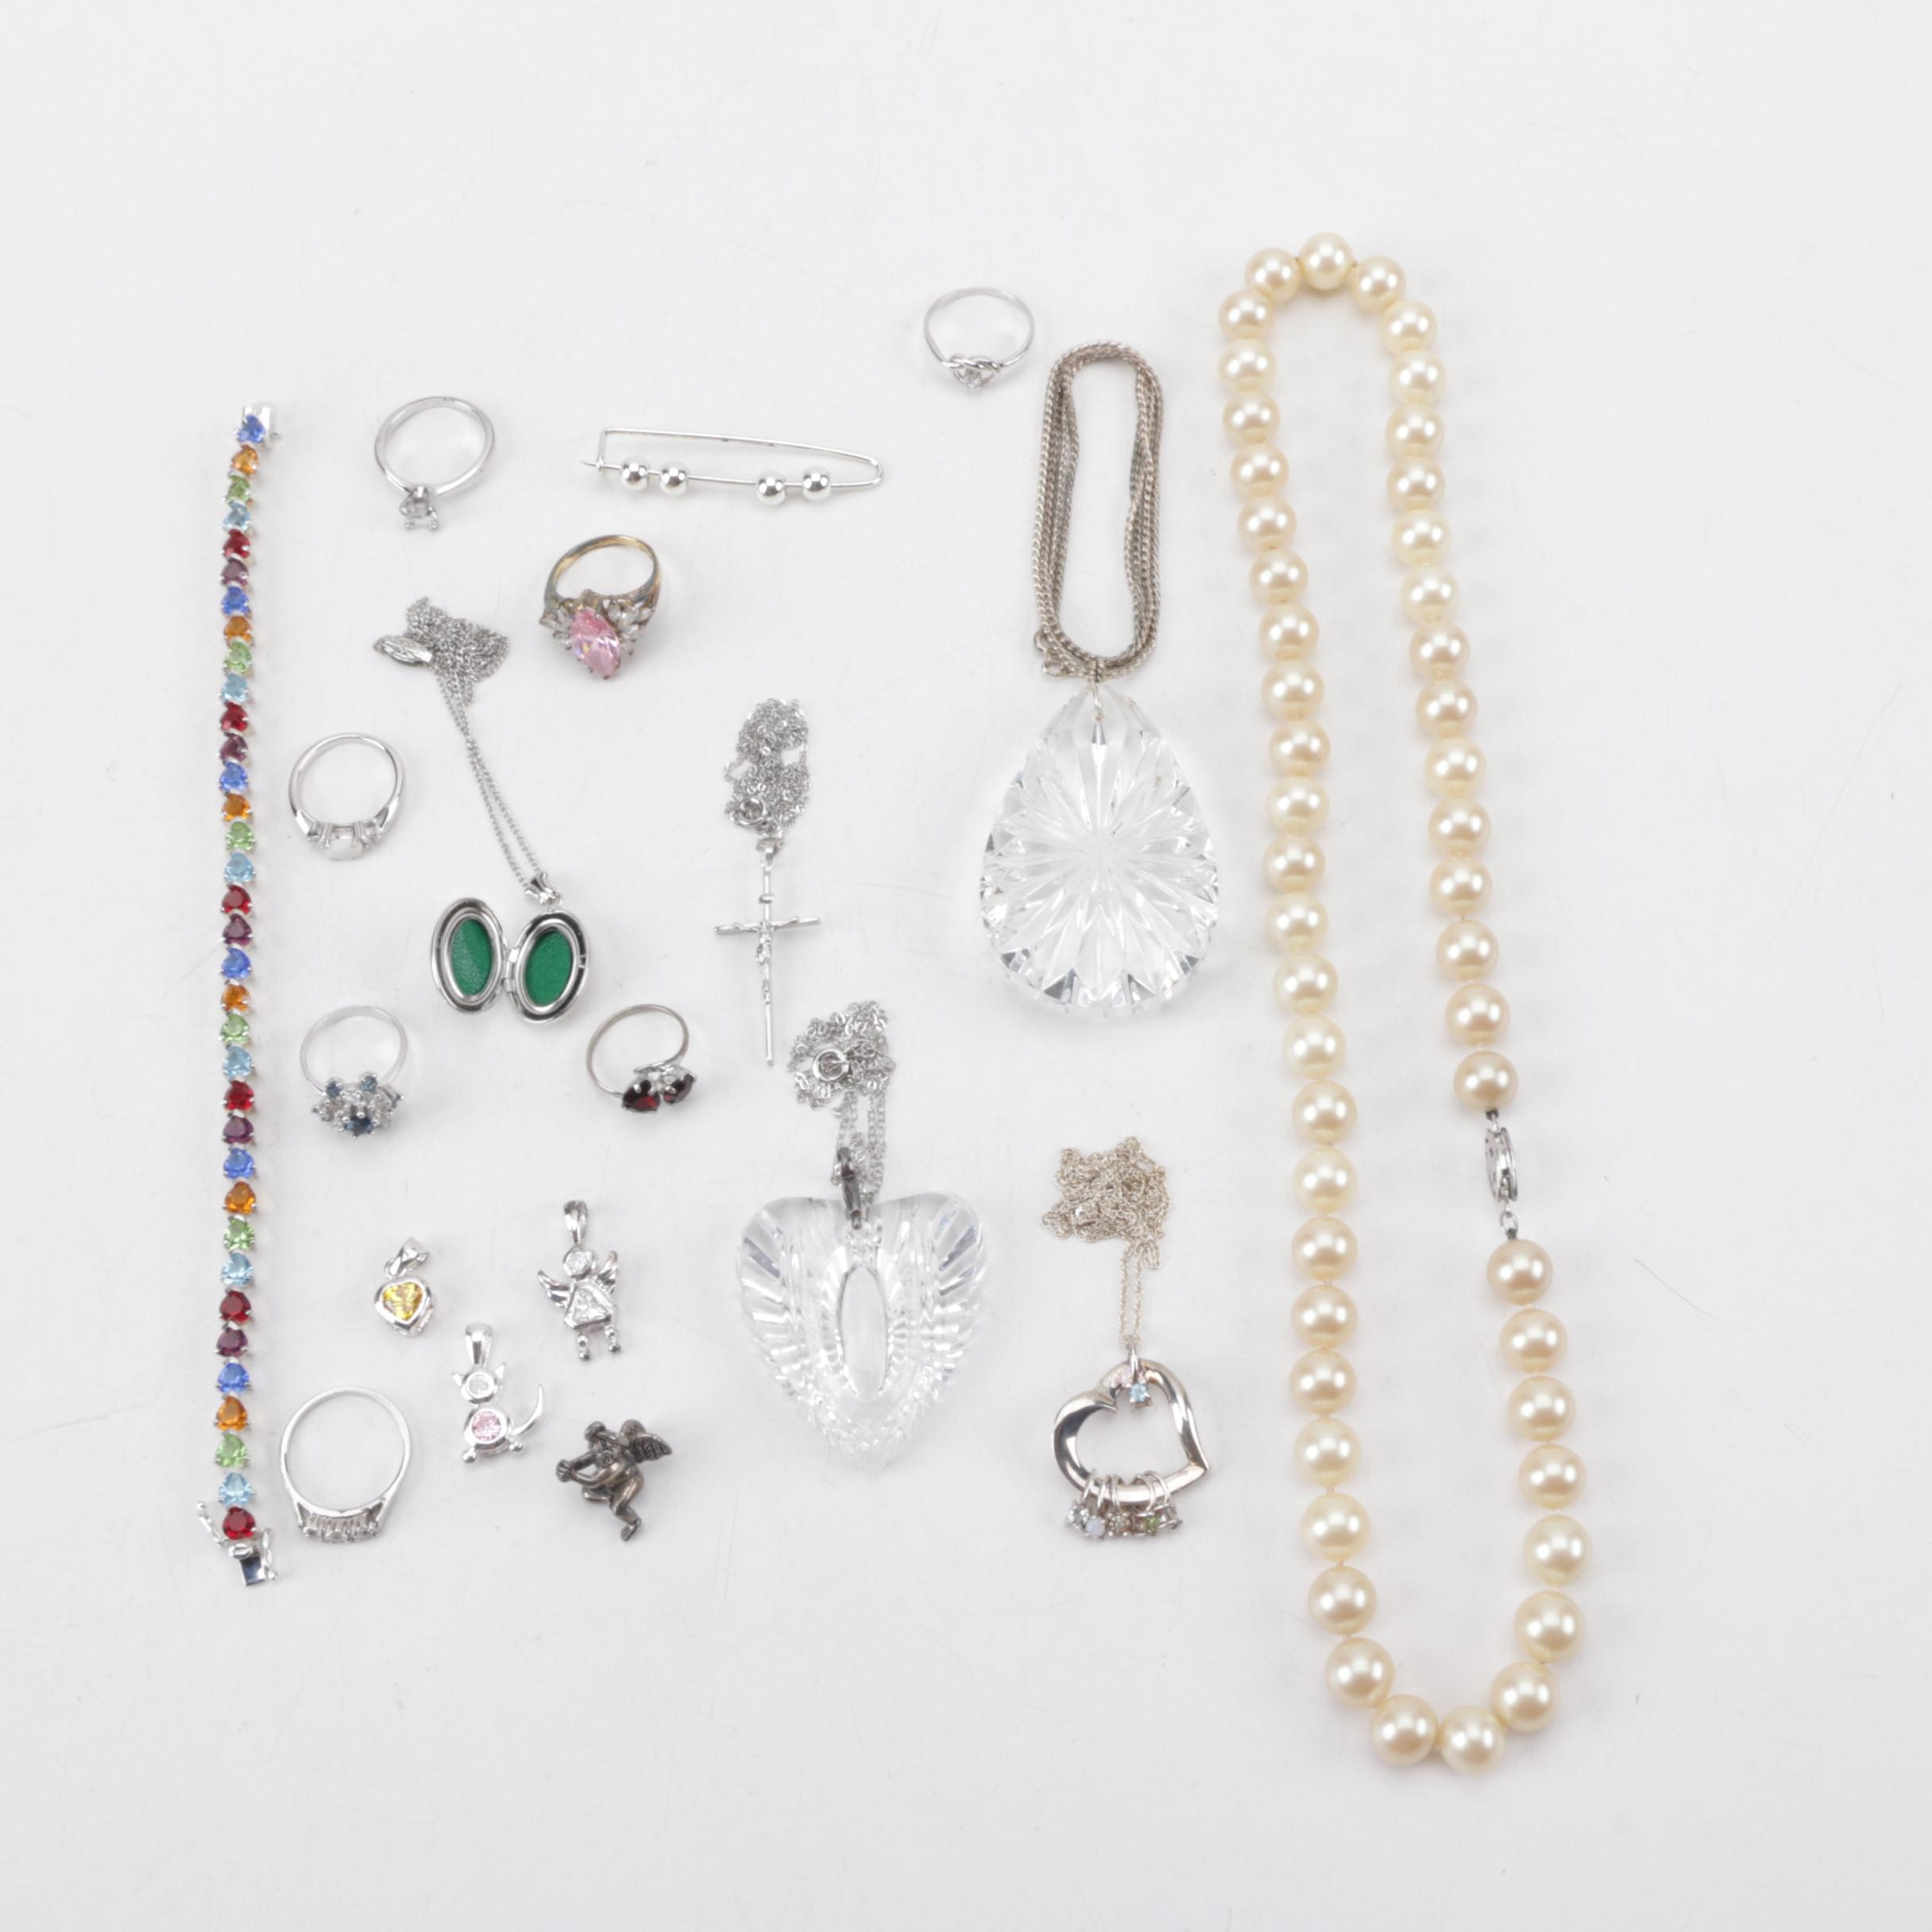 Grouping of Sterling Silver Jewelry Featuring Waterford and Lenox